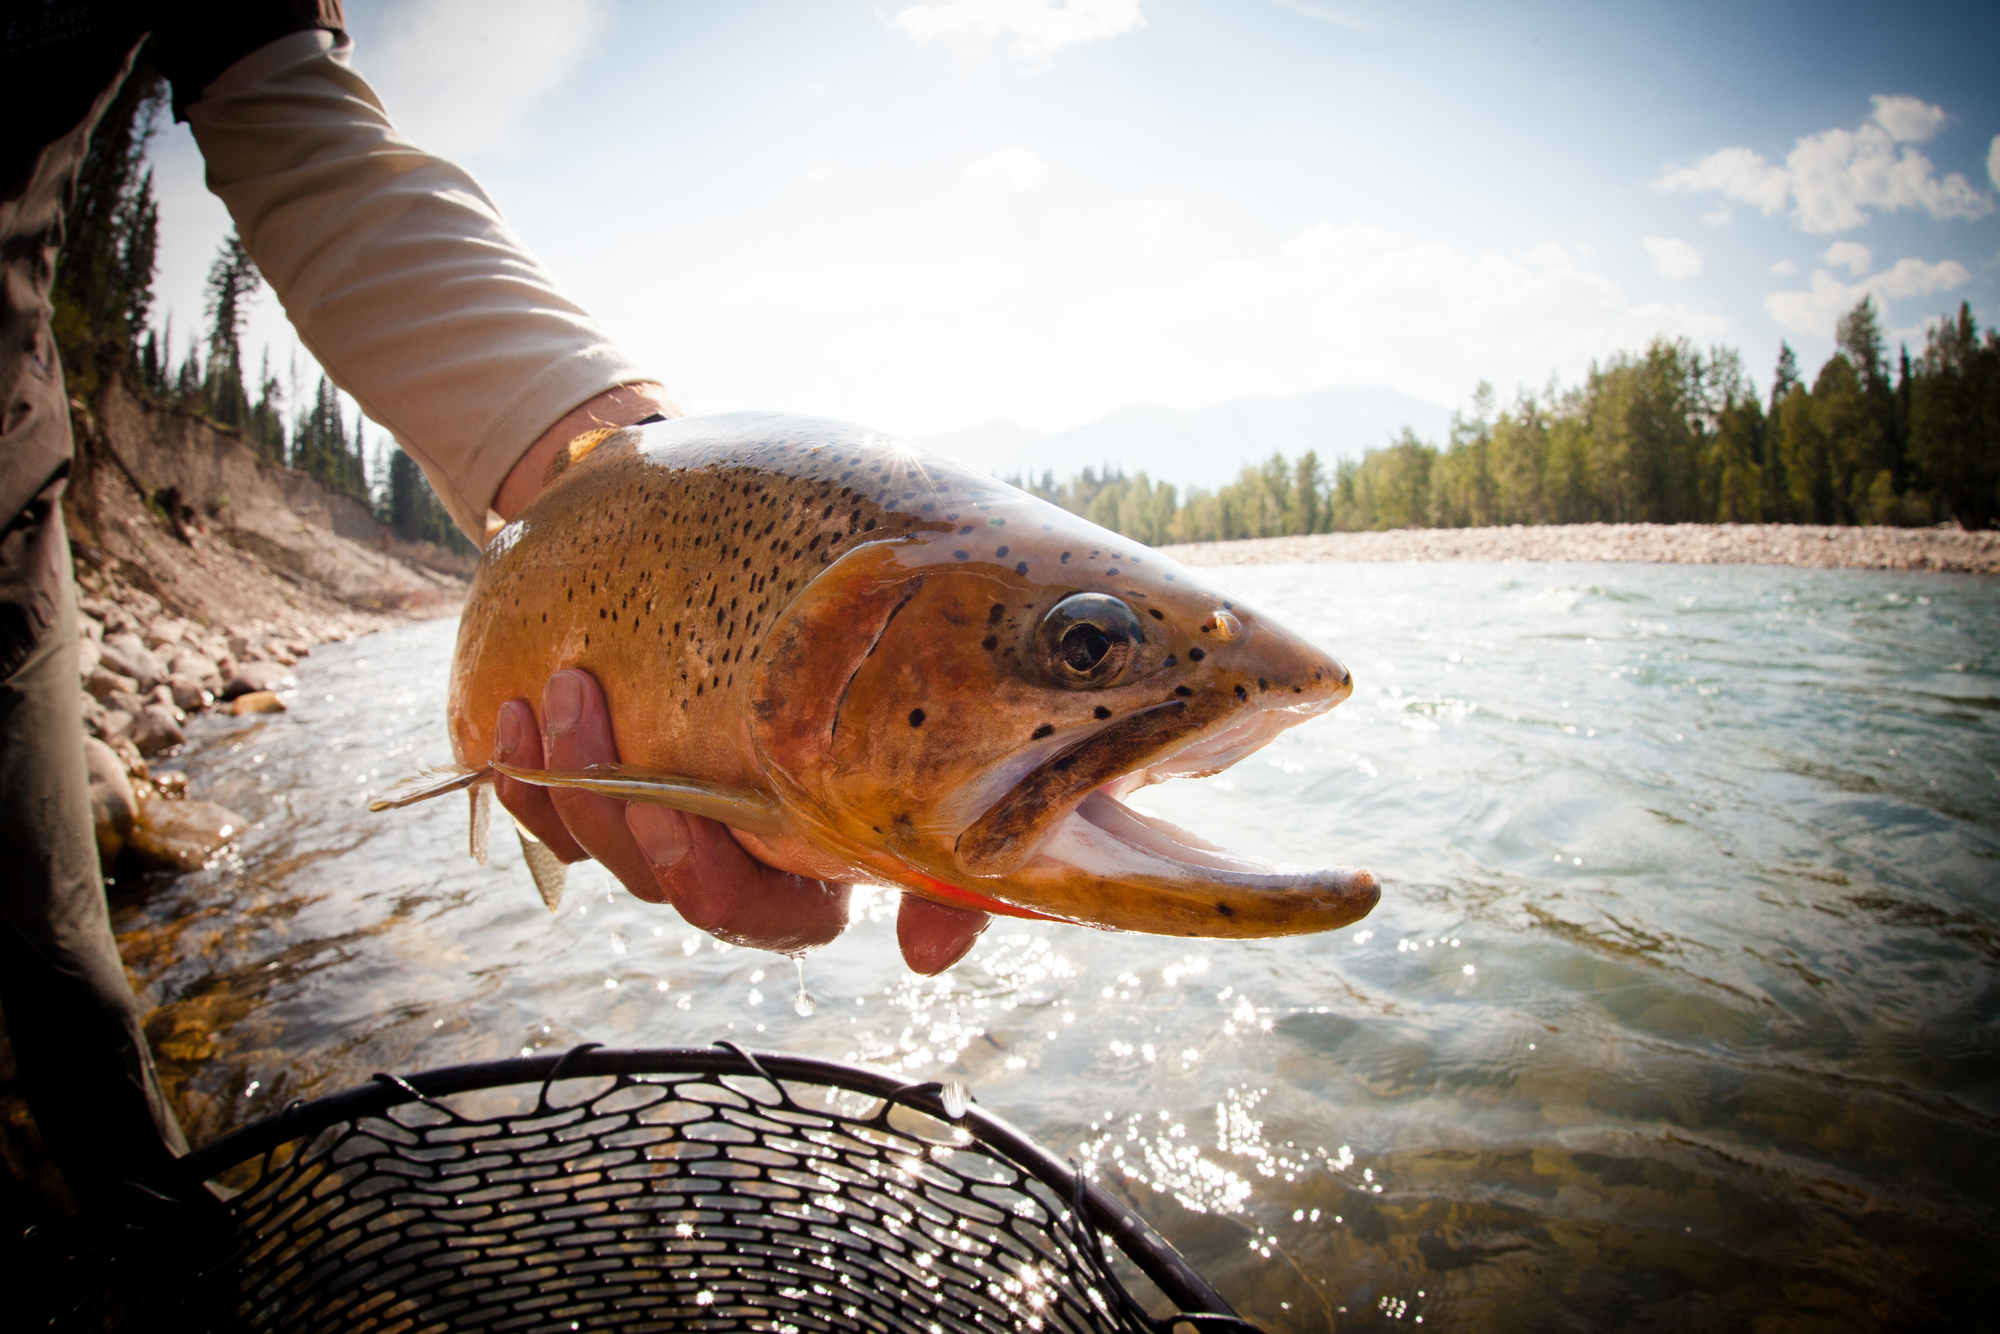 (4/4) Exceeding the Elk in its beauty are only its cutthroat, impossibly handsome, pepper-spotted fish hued in all manner of yellow, gold, orange and red. Virtually every fish that comes to hand is a sight to behold. These rivers simply don't breed duds.